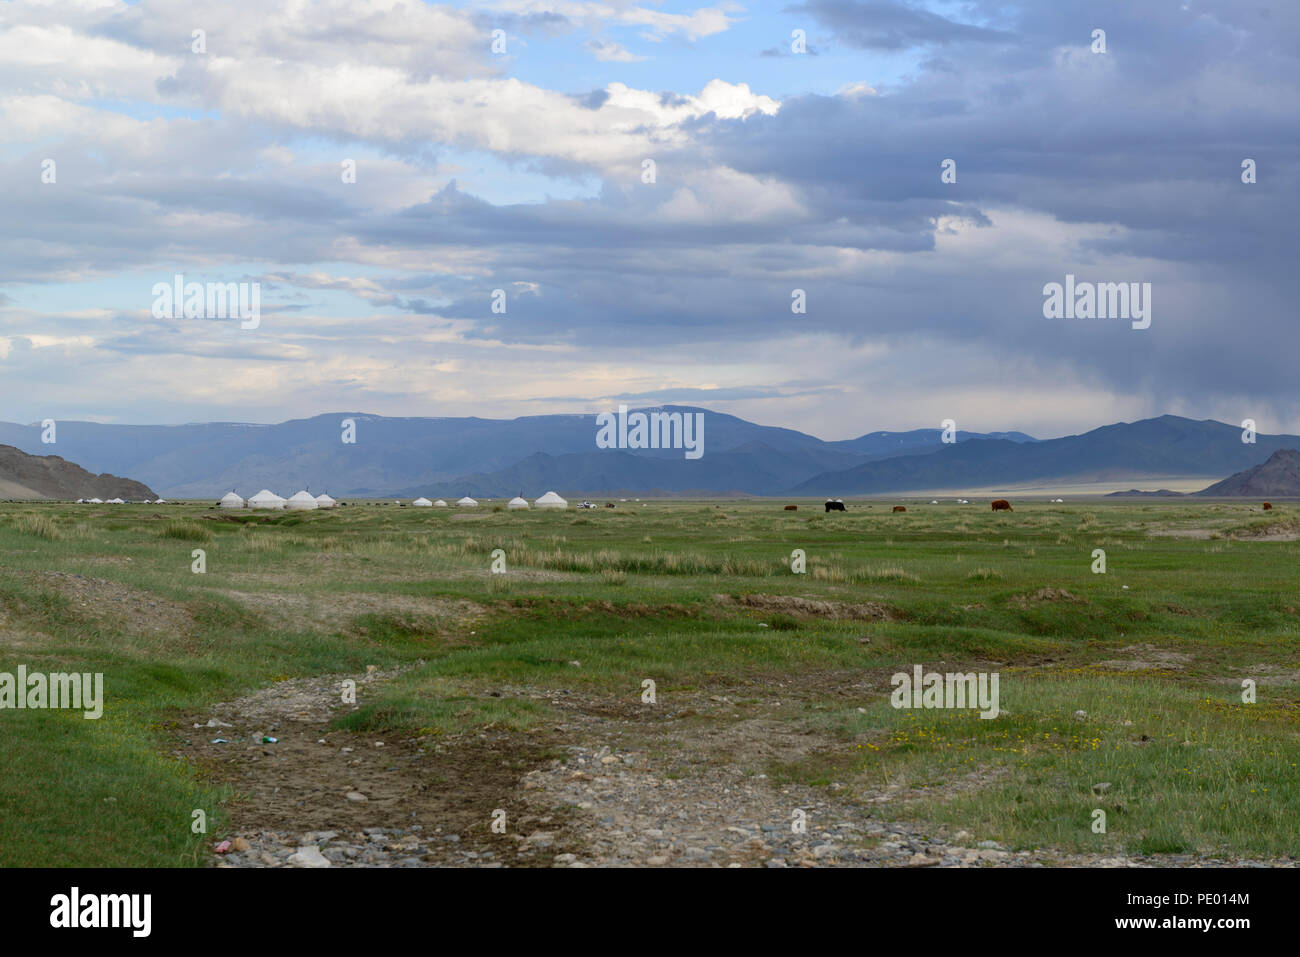 Landscape in the province Bayan-Ölgii, Mongolia. Ger camp and cattle - Stock Image